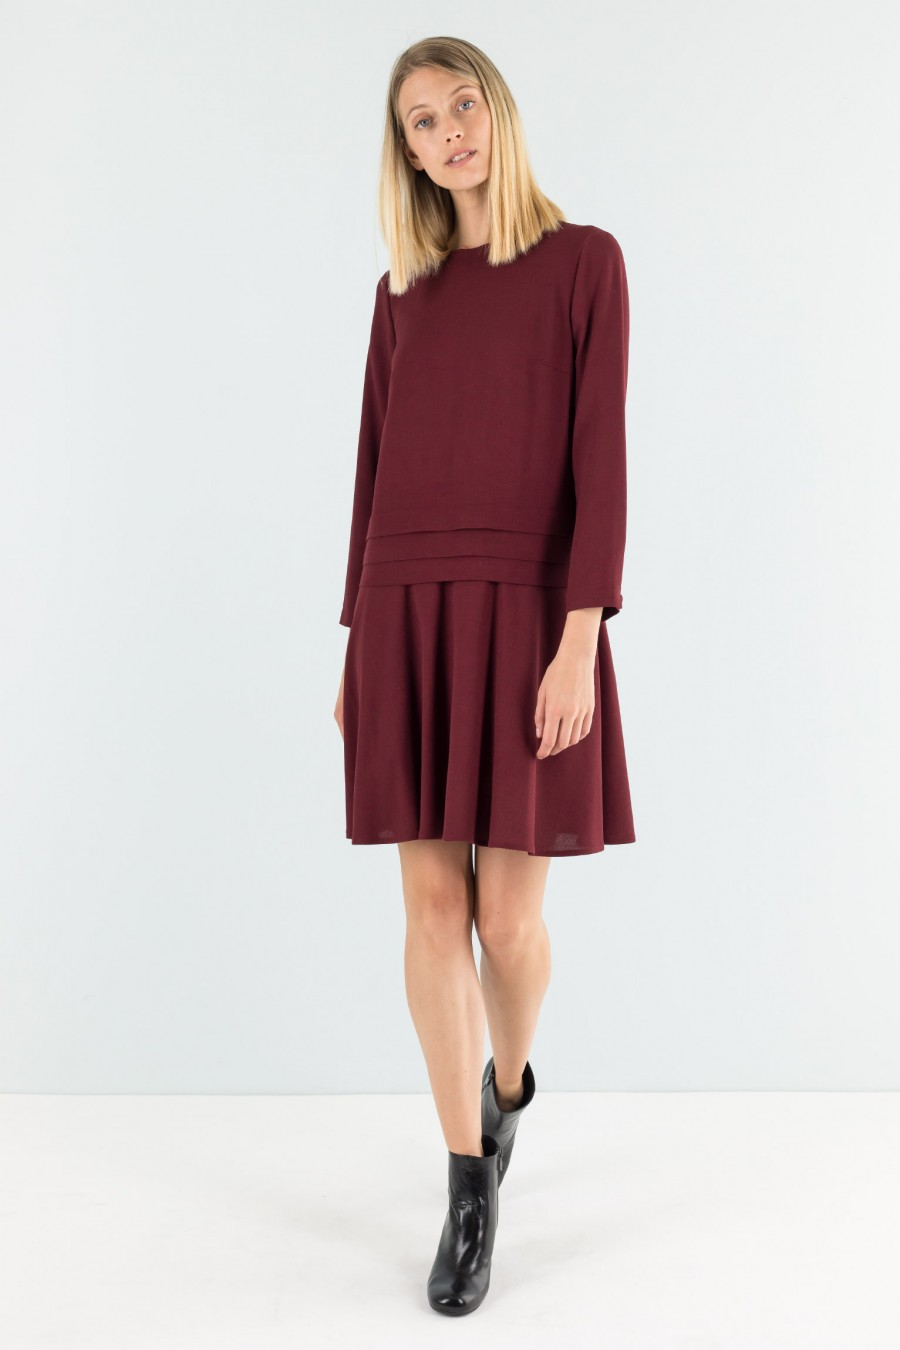 Low waist burgundy dress